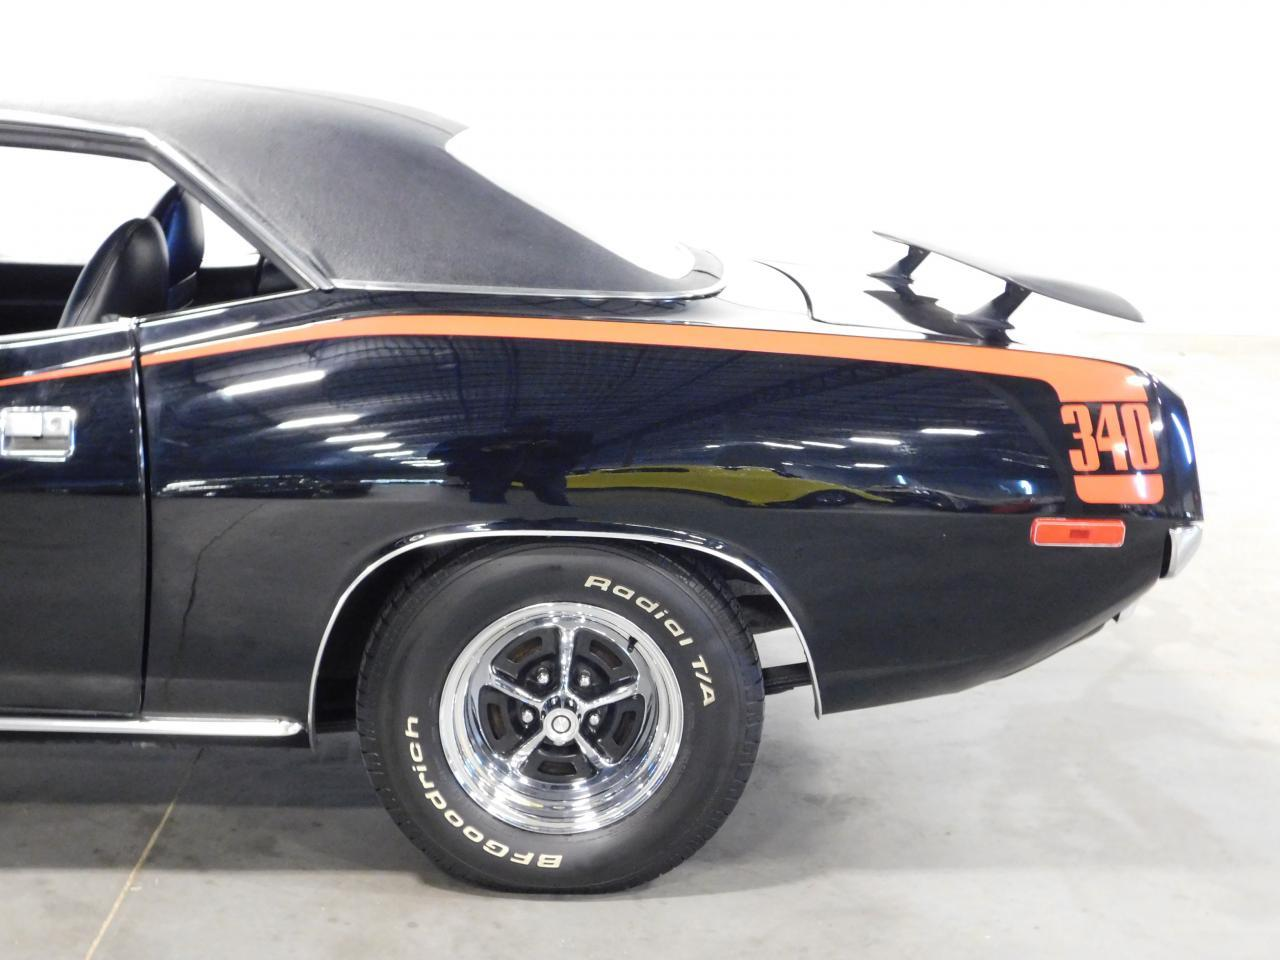 Large Picture of Classic '72 Barracuda located in Georgia - $44,995.00 Offered by Gateway Classic Cars - Atlanta - MZG1